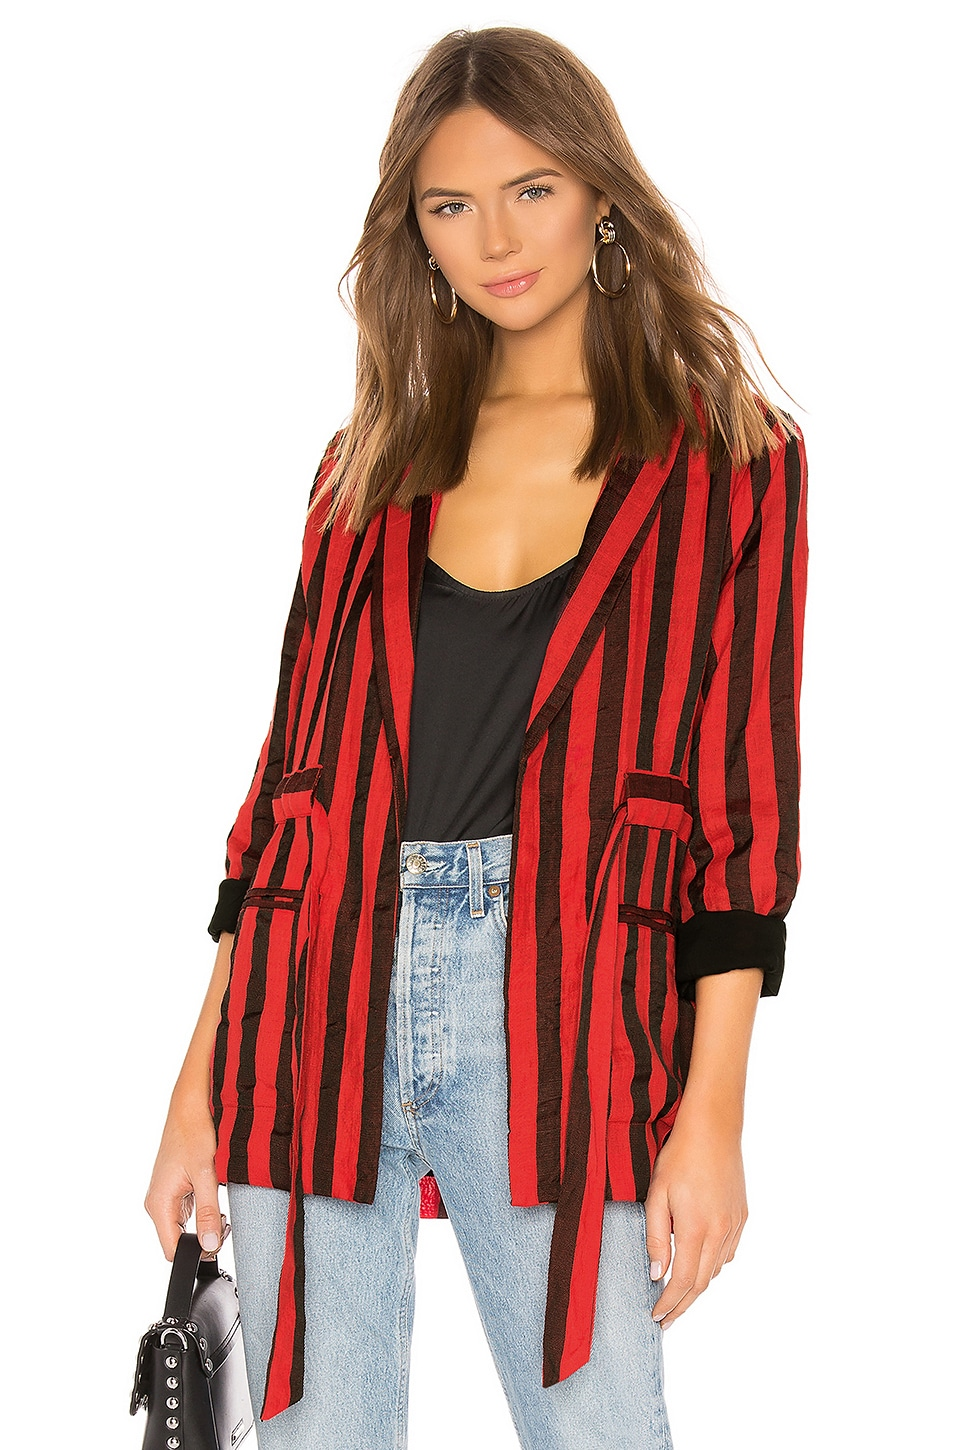 L'Academie The Jules Robe in Red & Black